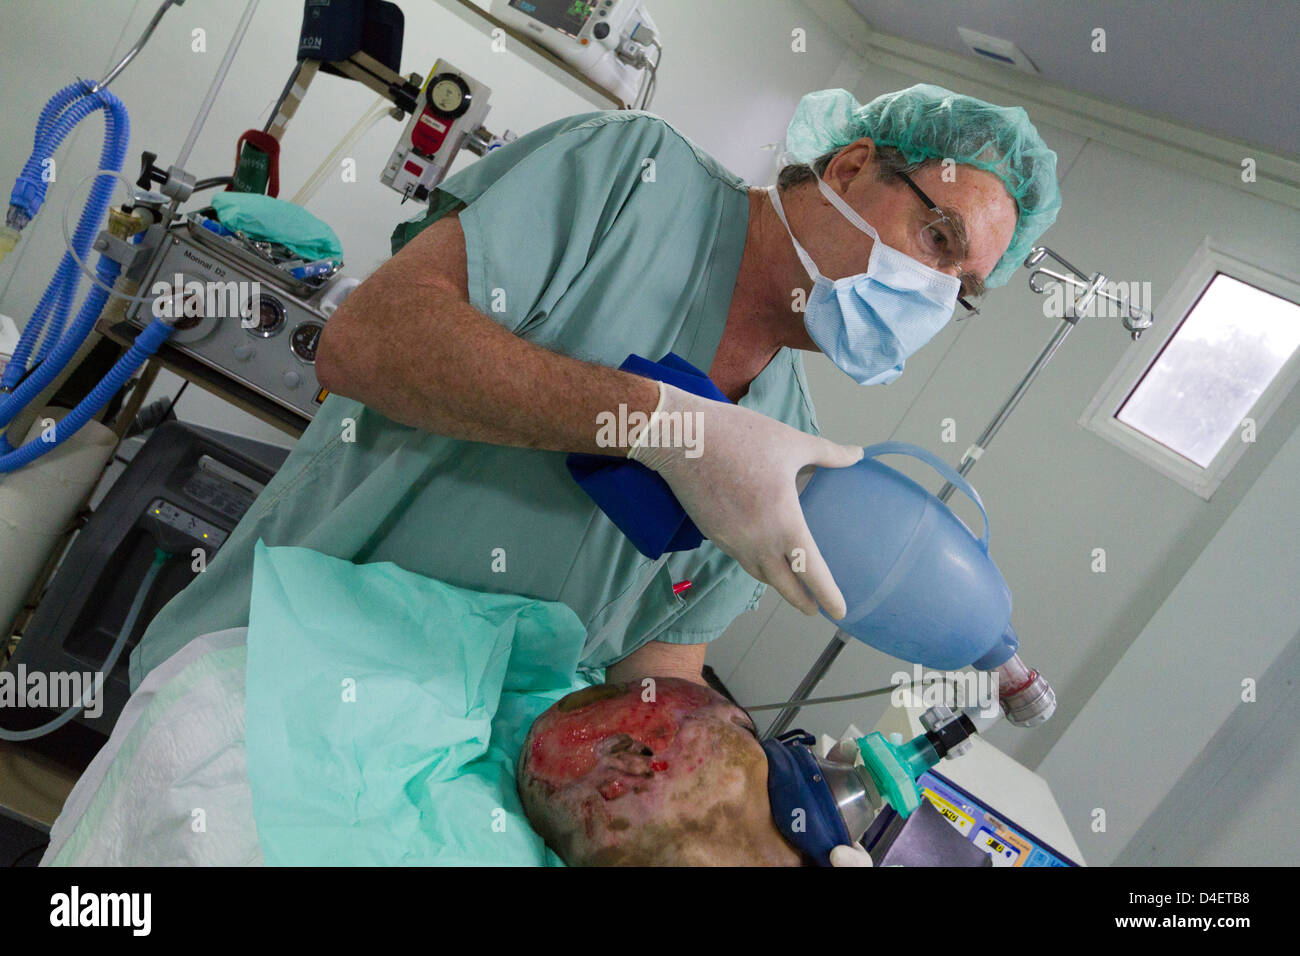 anesthesia with intubation for surgery in msf hospital port au